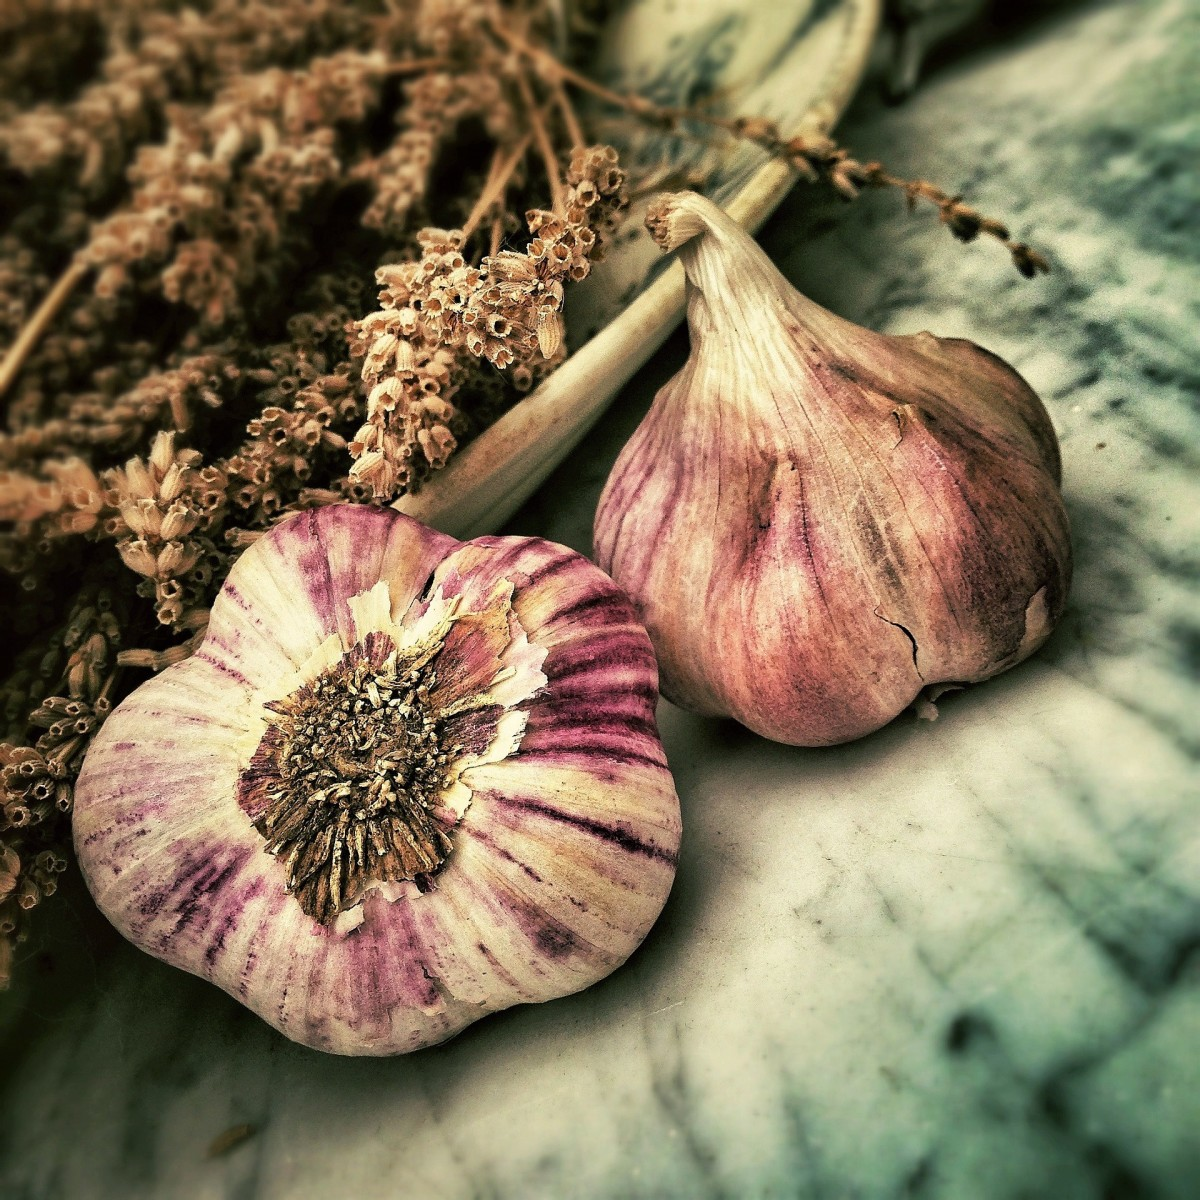 There might be a link between garlic and hydrogen sulfide in the body.